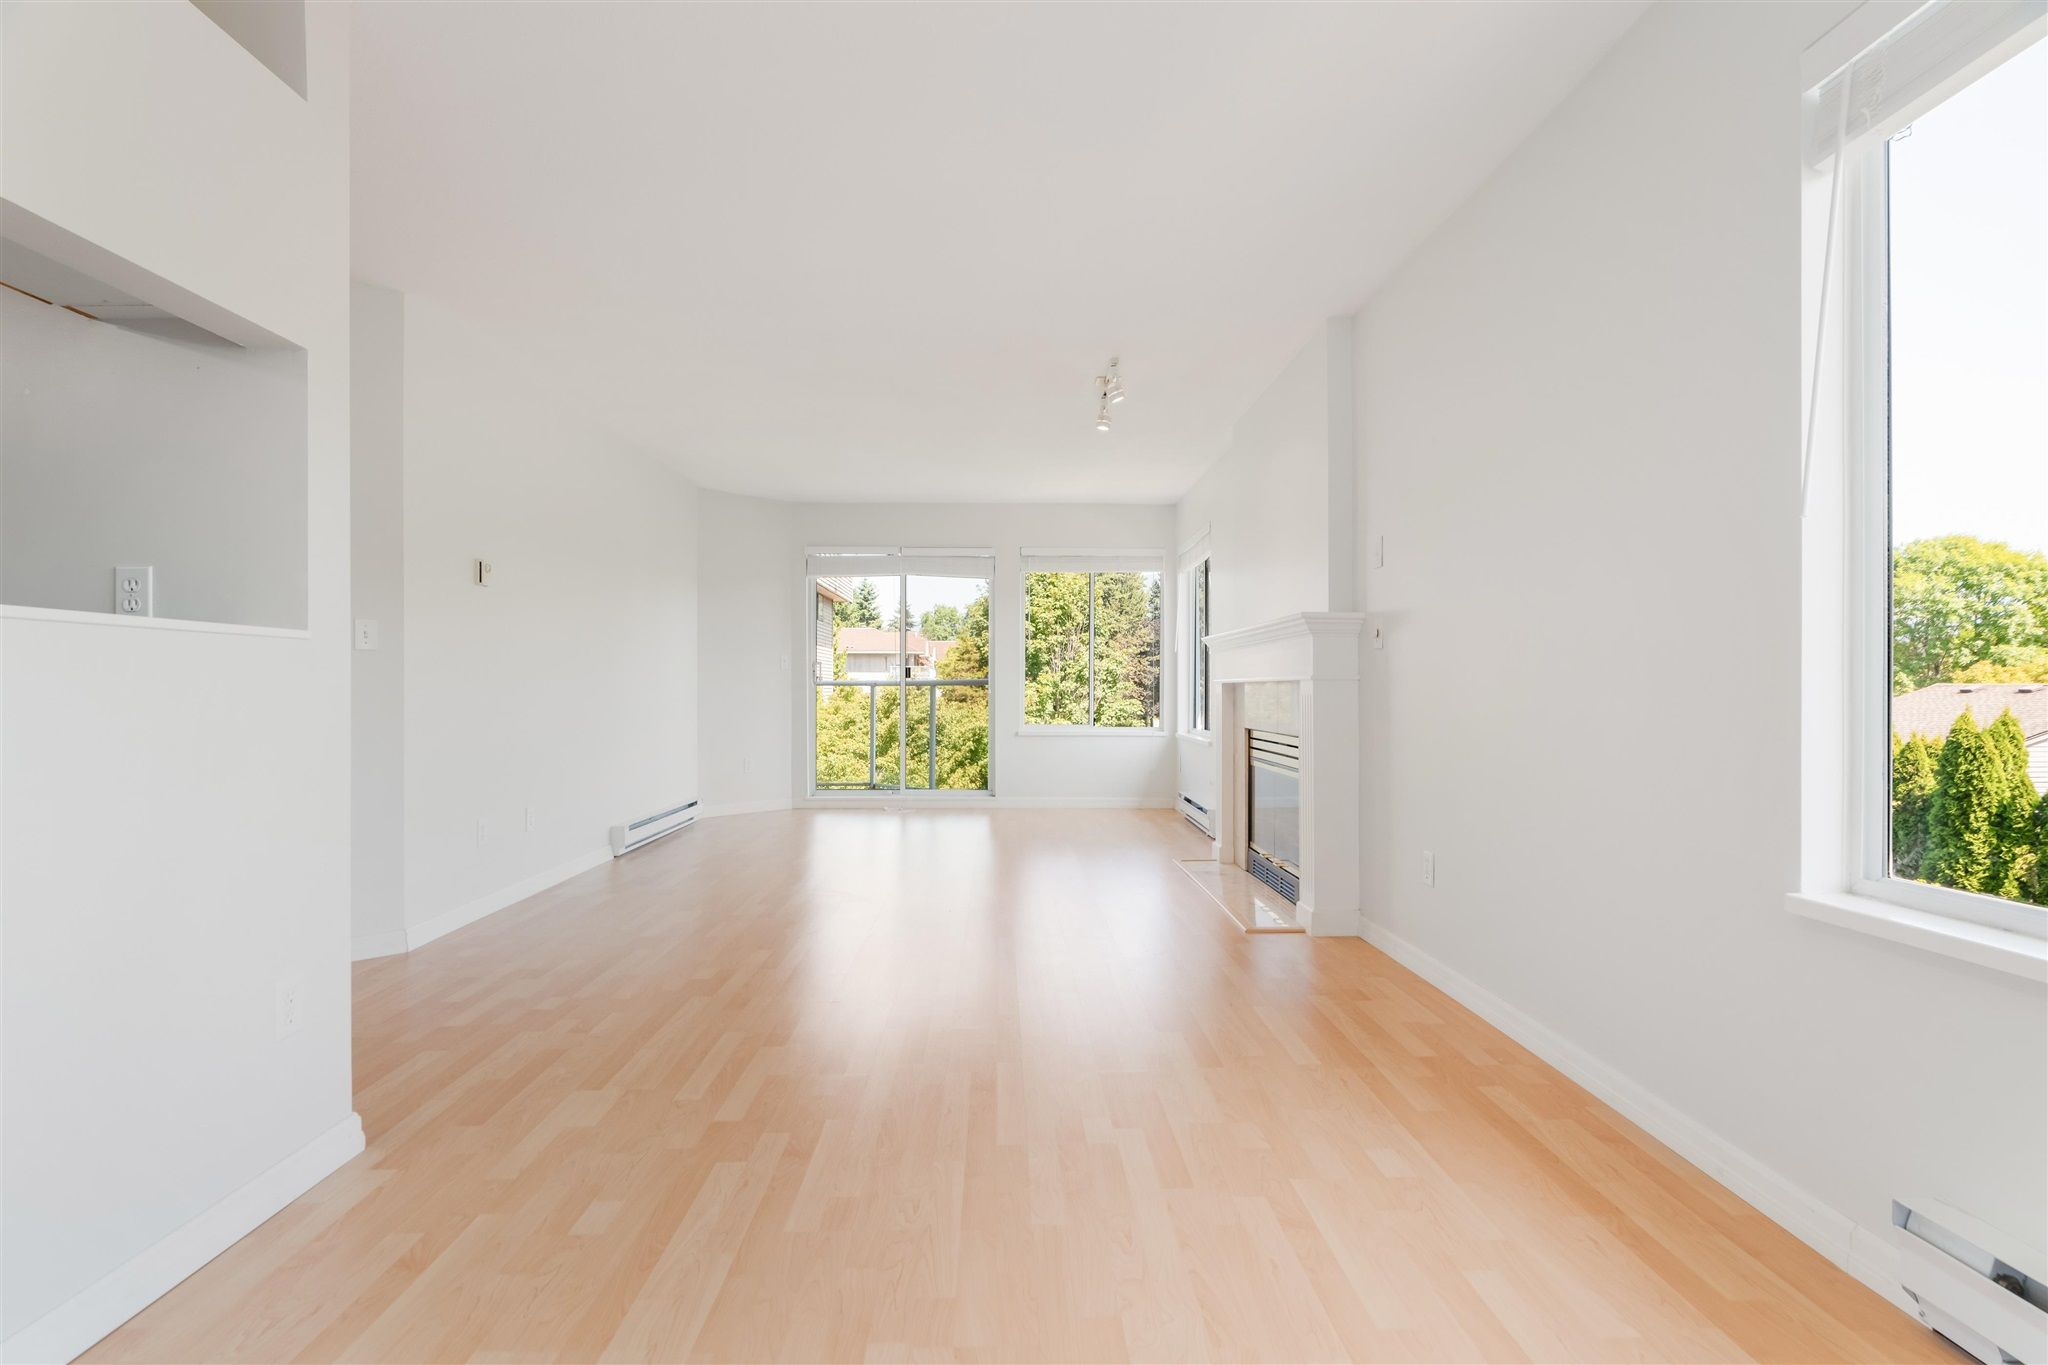 Photo 11: Photos: 303 1171 PIPELINE Road in Coquitlam: New Horizons Condo for sale : MLS®# R2607932